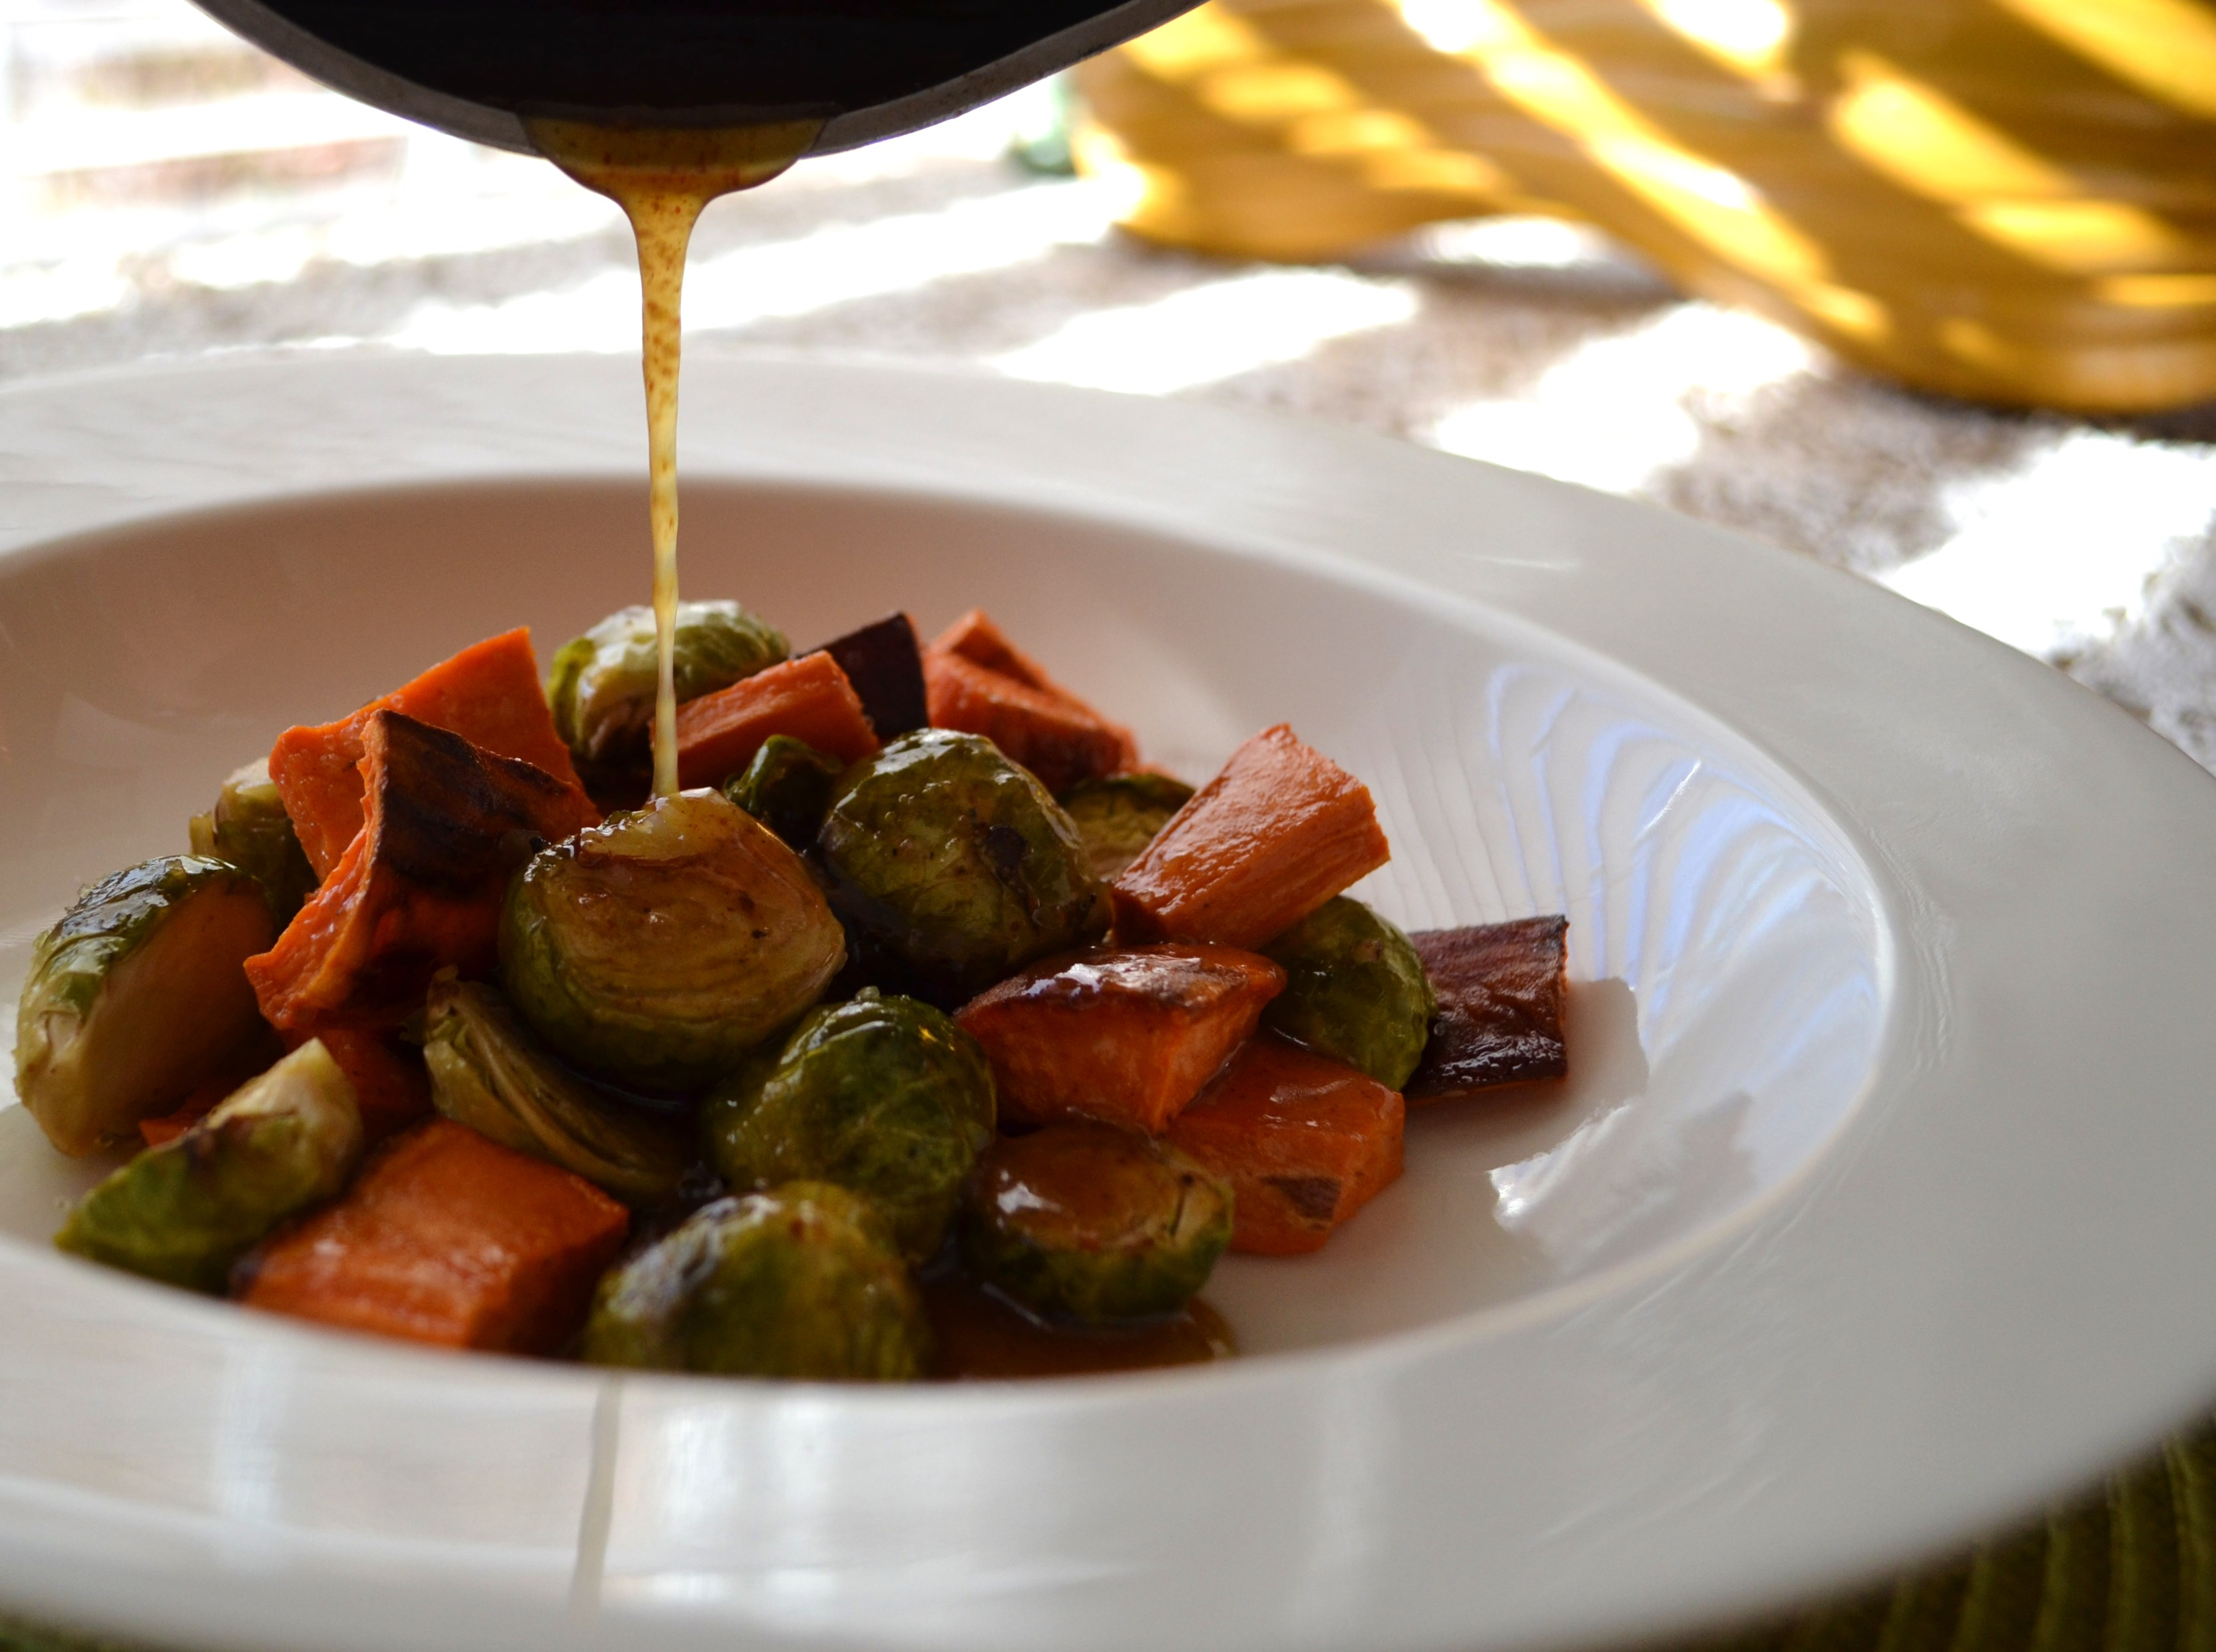 ... vegan vinegar veggies vinegar veggies a simple yet i love to grill